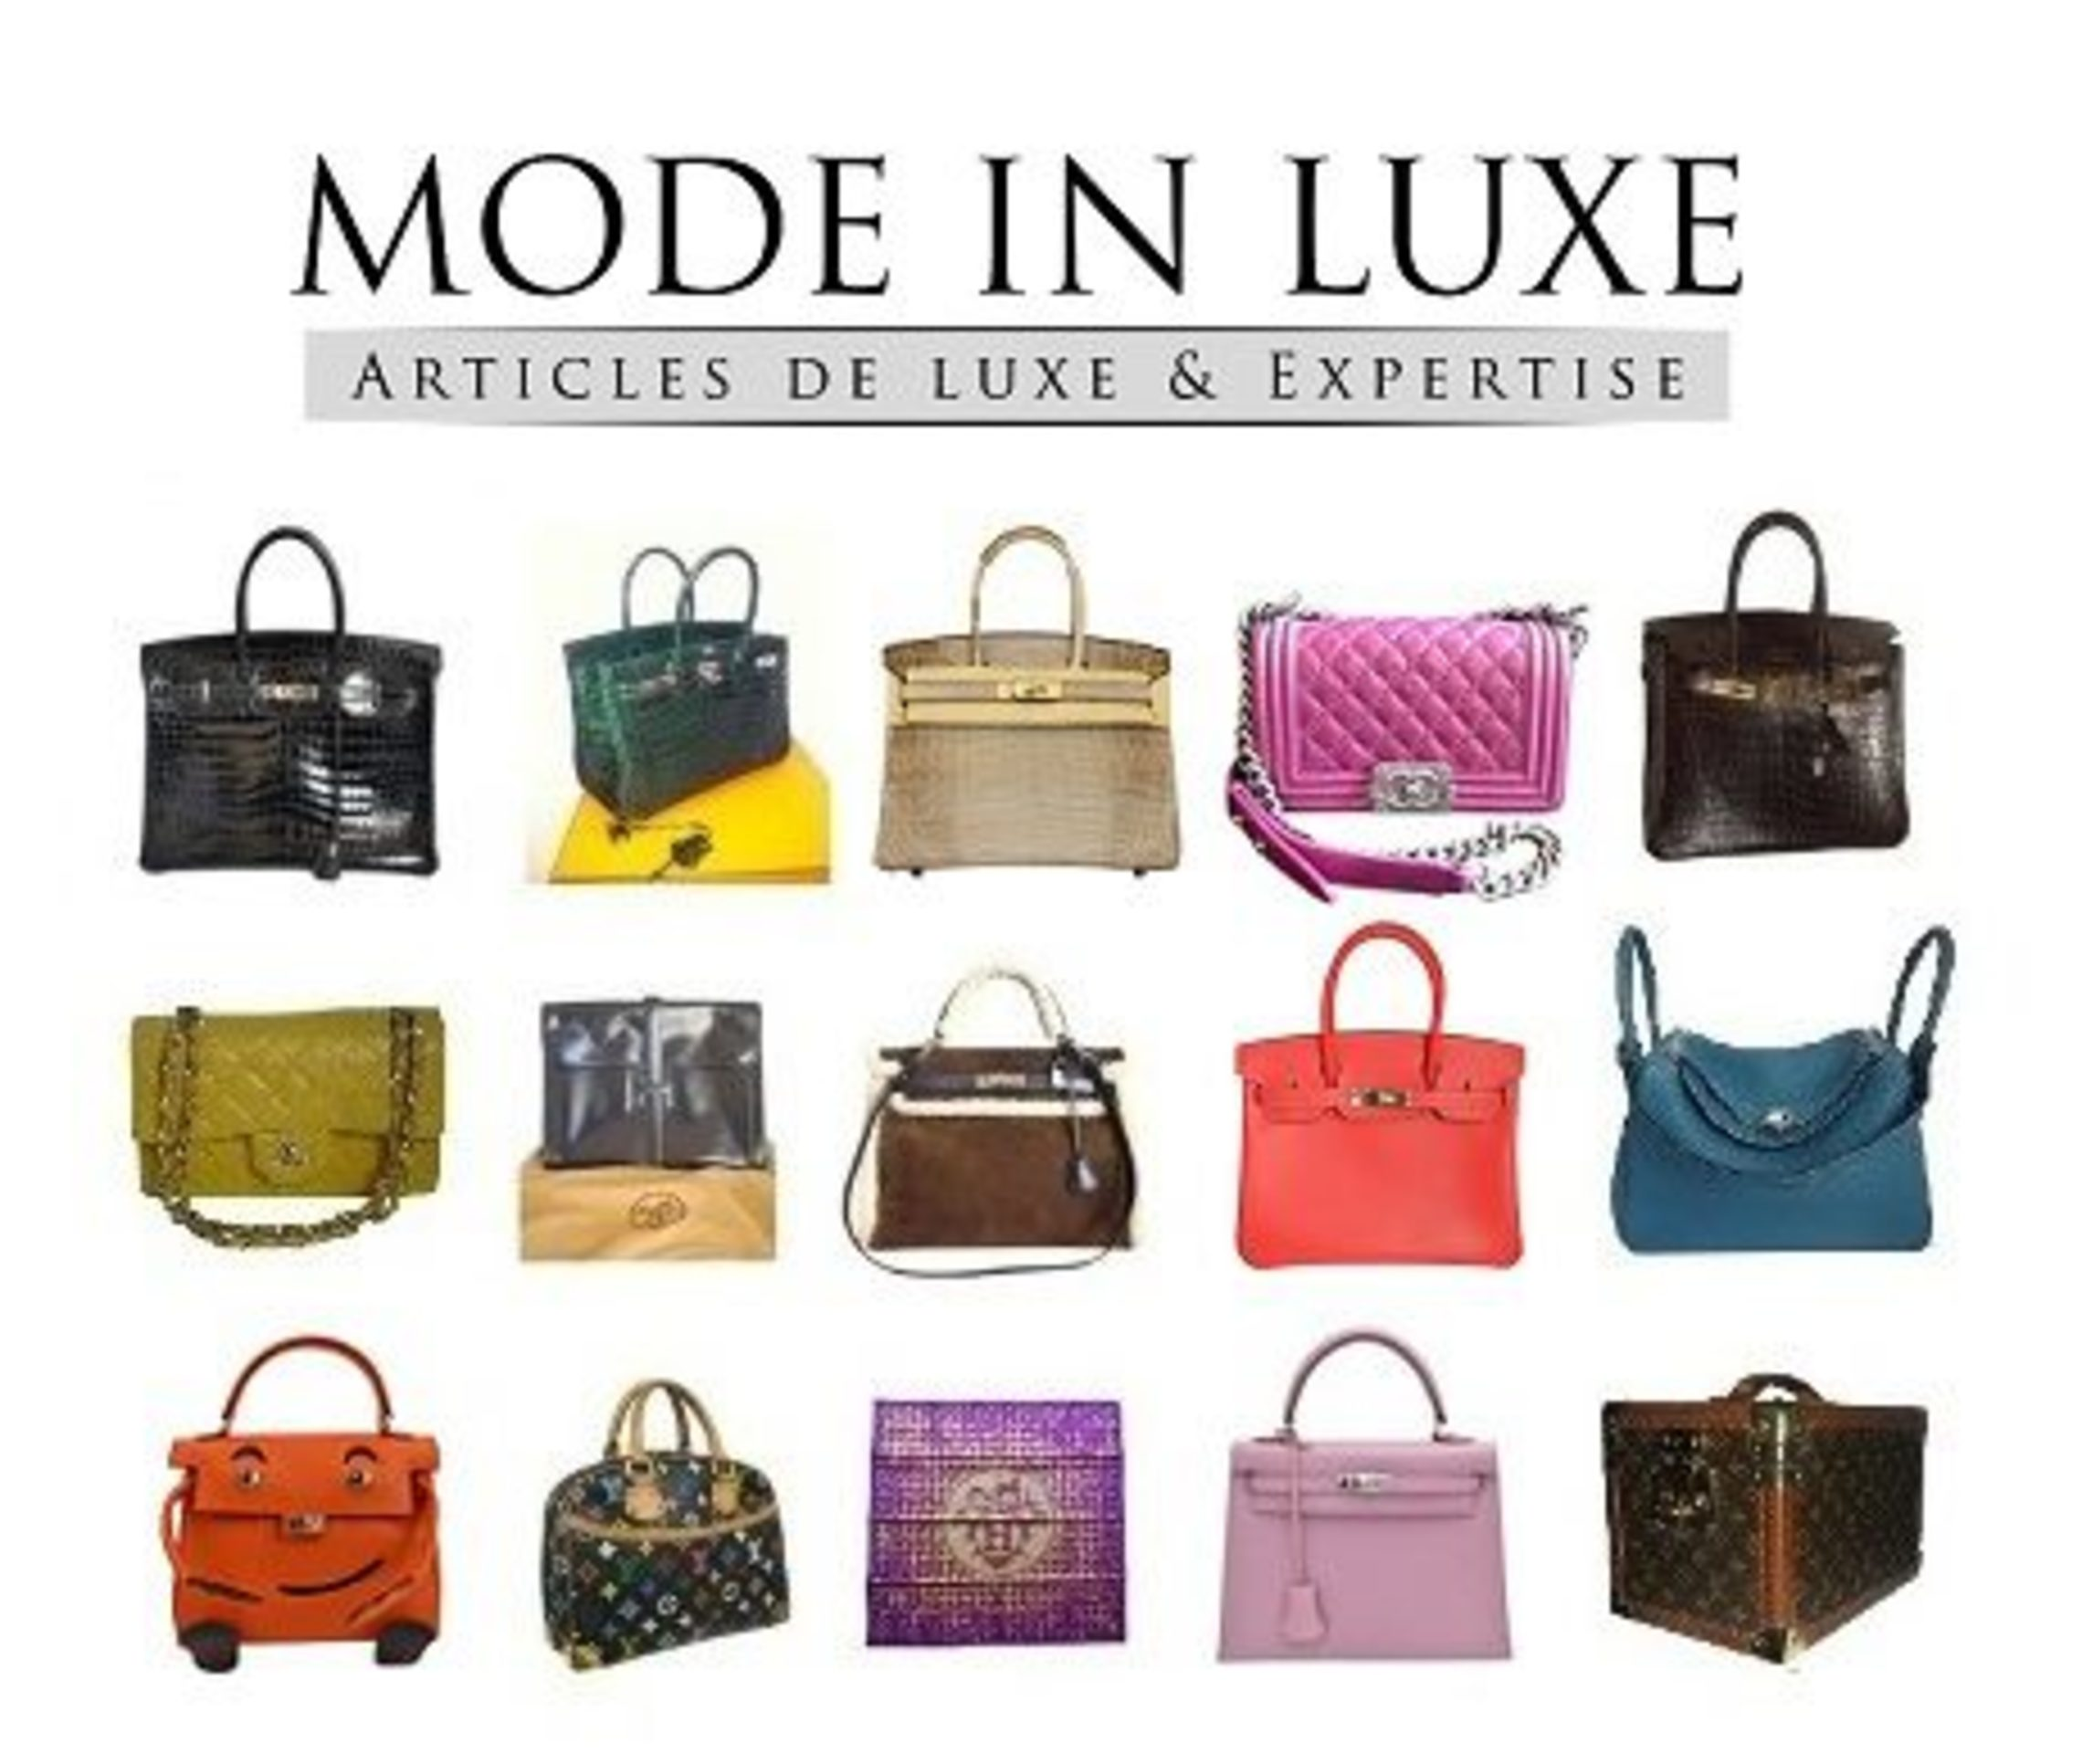 mode in luxe- company logo